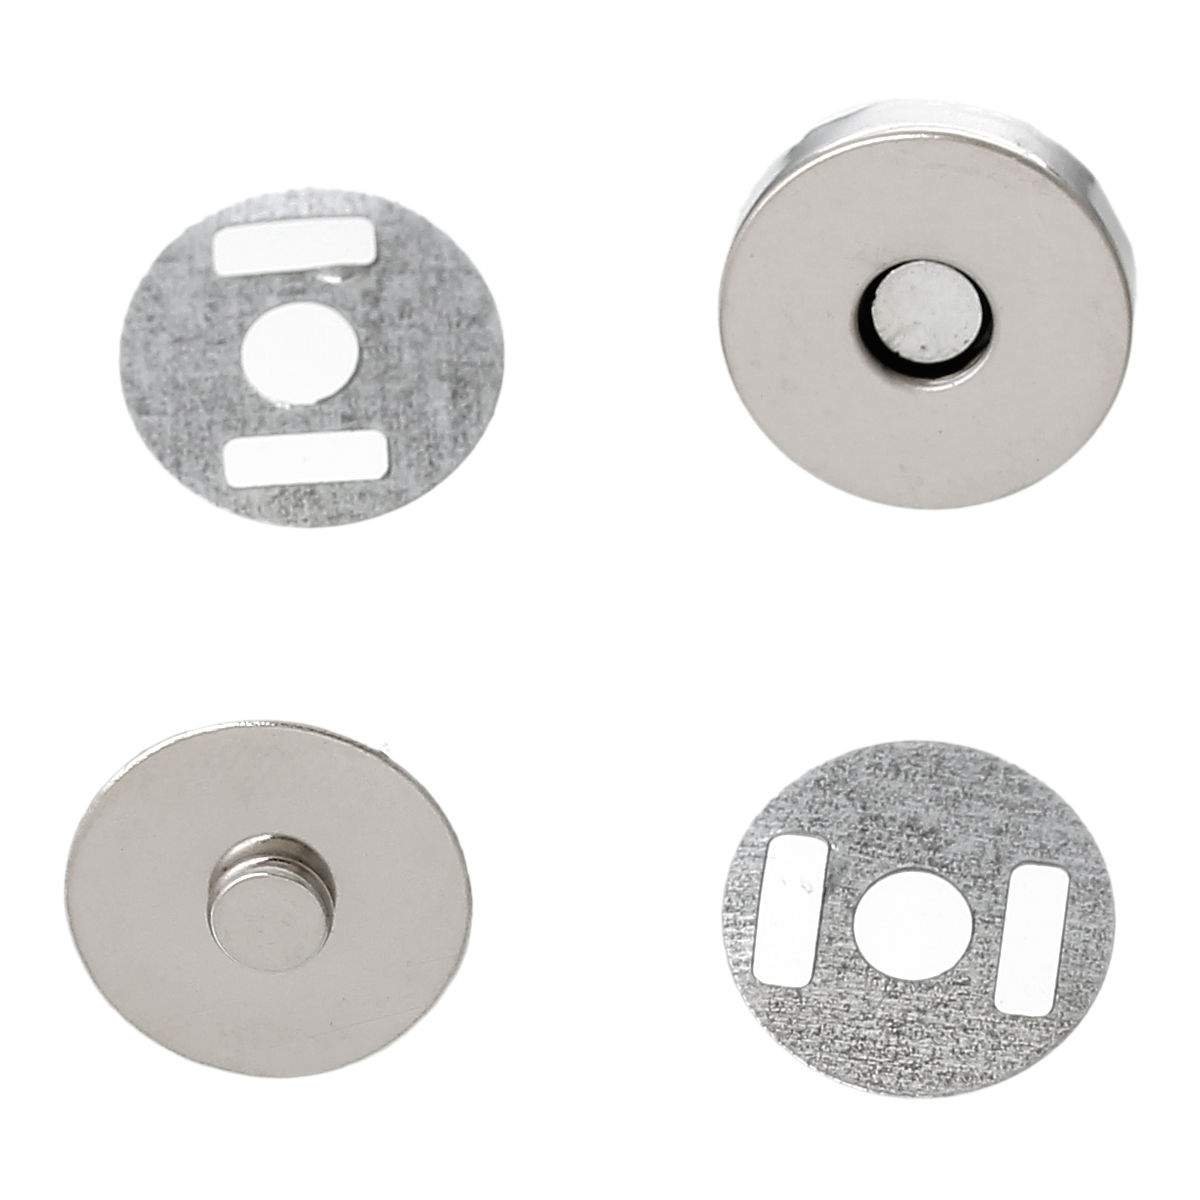 4 Sets Silver Tone Magnetic Purse Snap Clasps/ Closure For Purse Handbag 14mm(4/8